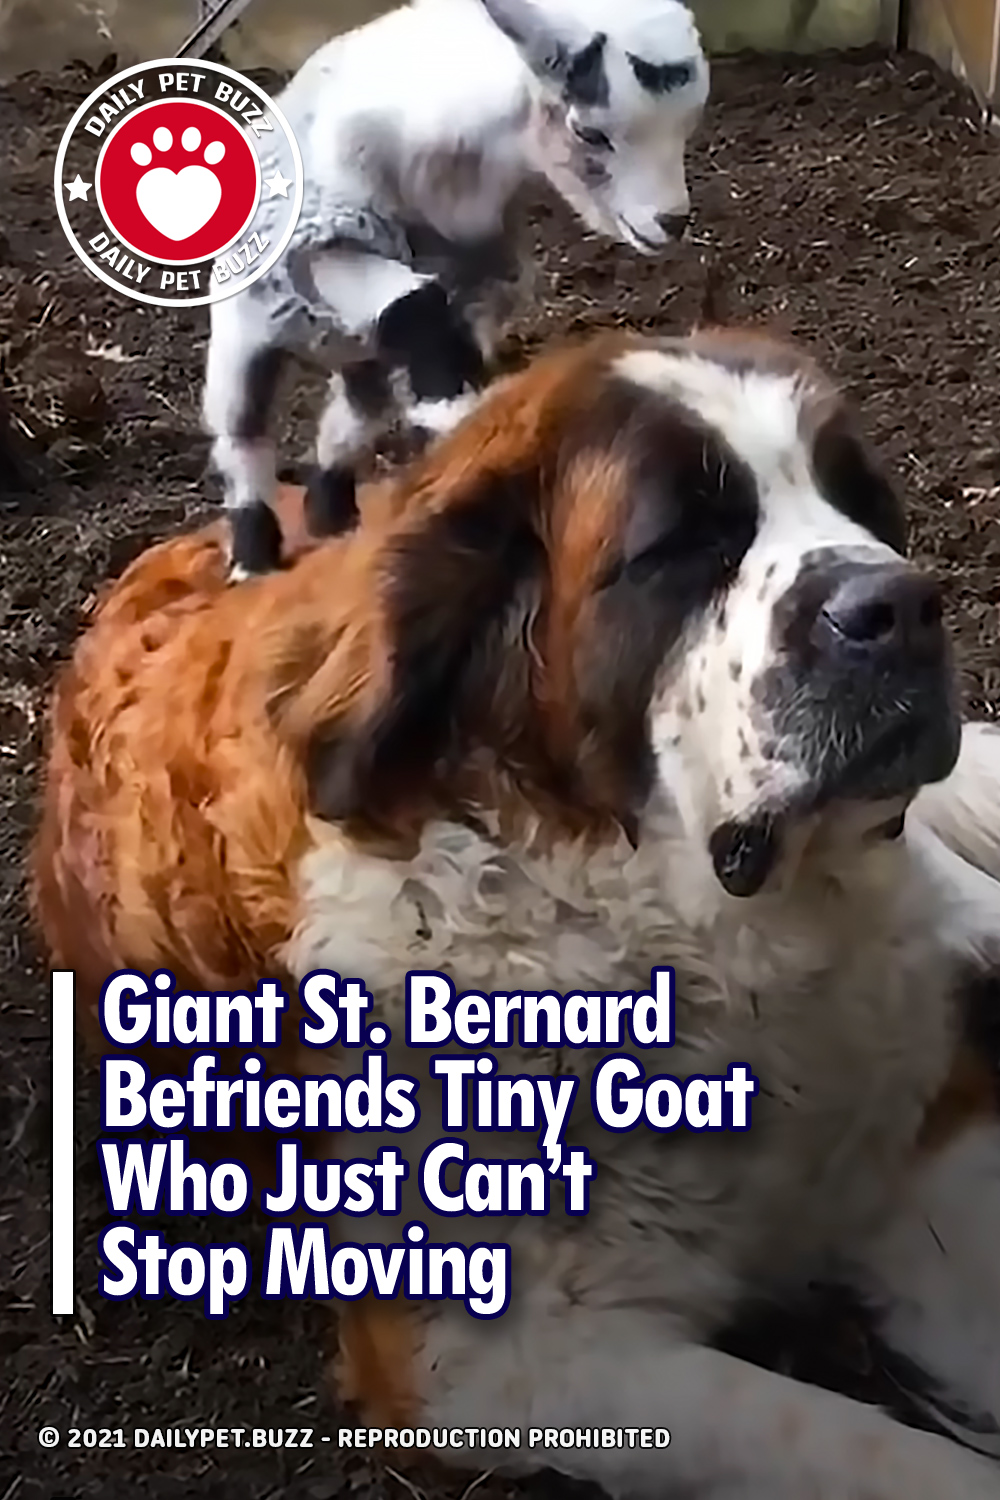 Giant St. Bernard Befriends Tiny Goat Who Just Can't Stop Moving